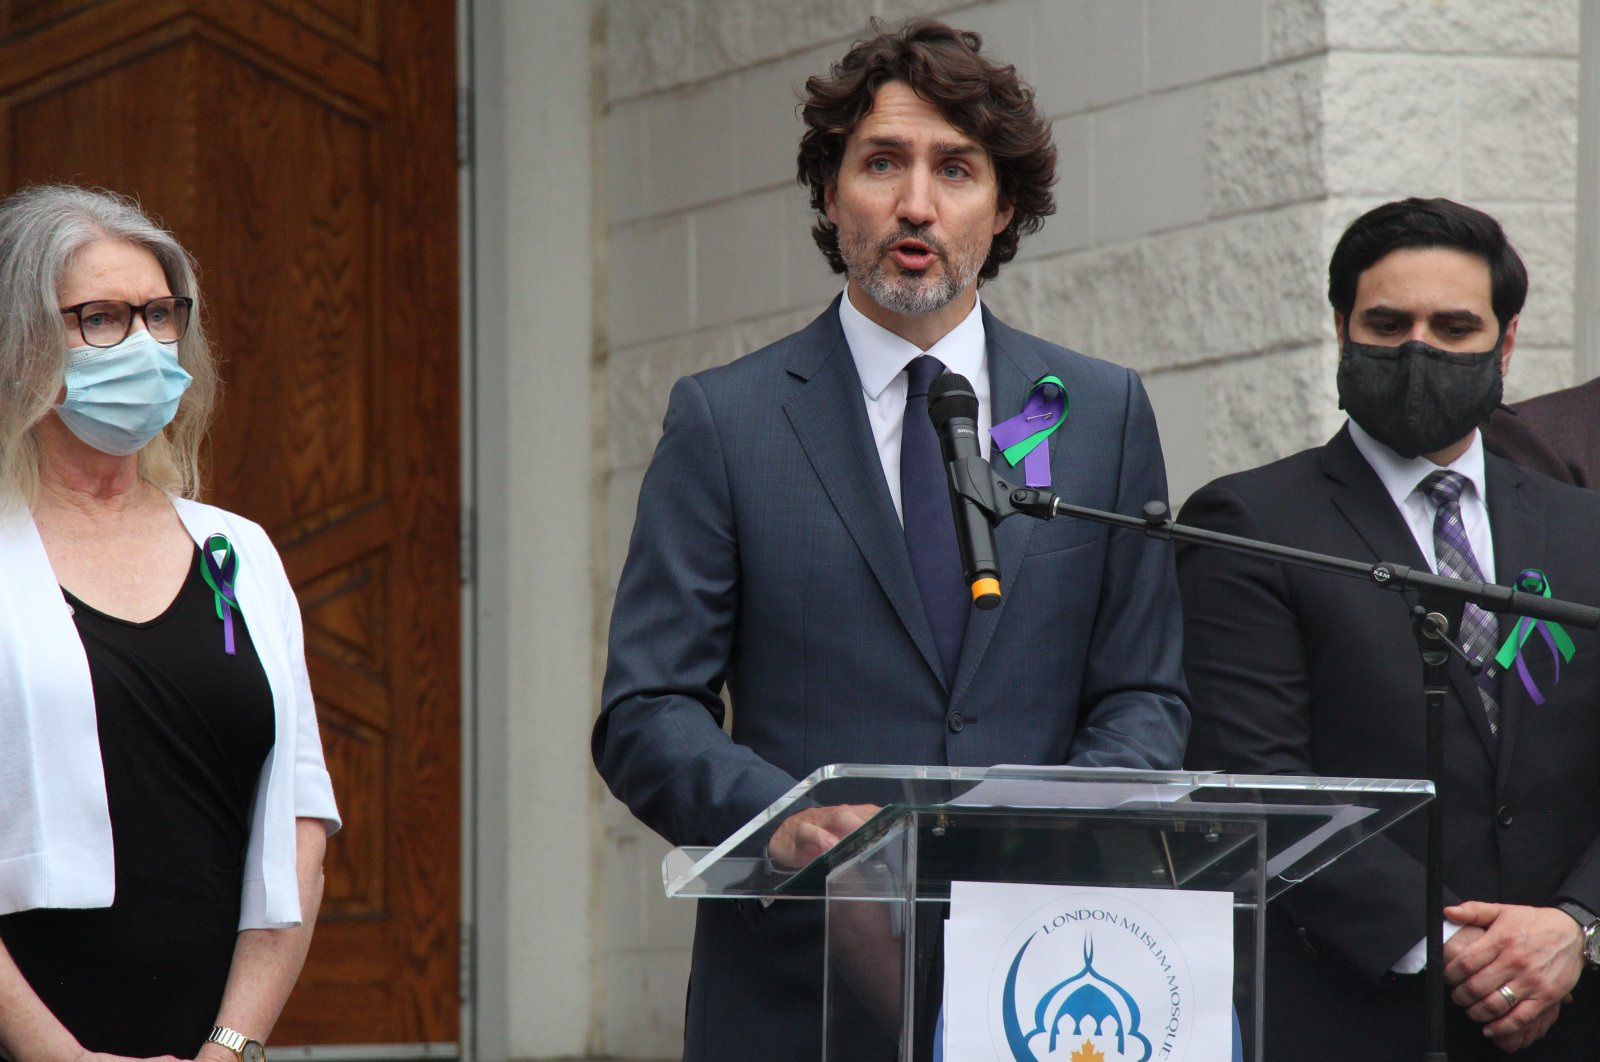 Canadian Prime Minister Justin Trudeau speaks during the memorial ceremony organized for members of the Muslim family killed in an Islamophobic attack, London, Ontario, Canada, June 10, 2021. (AA Photo)